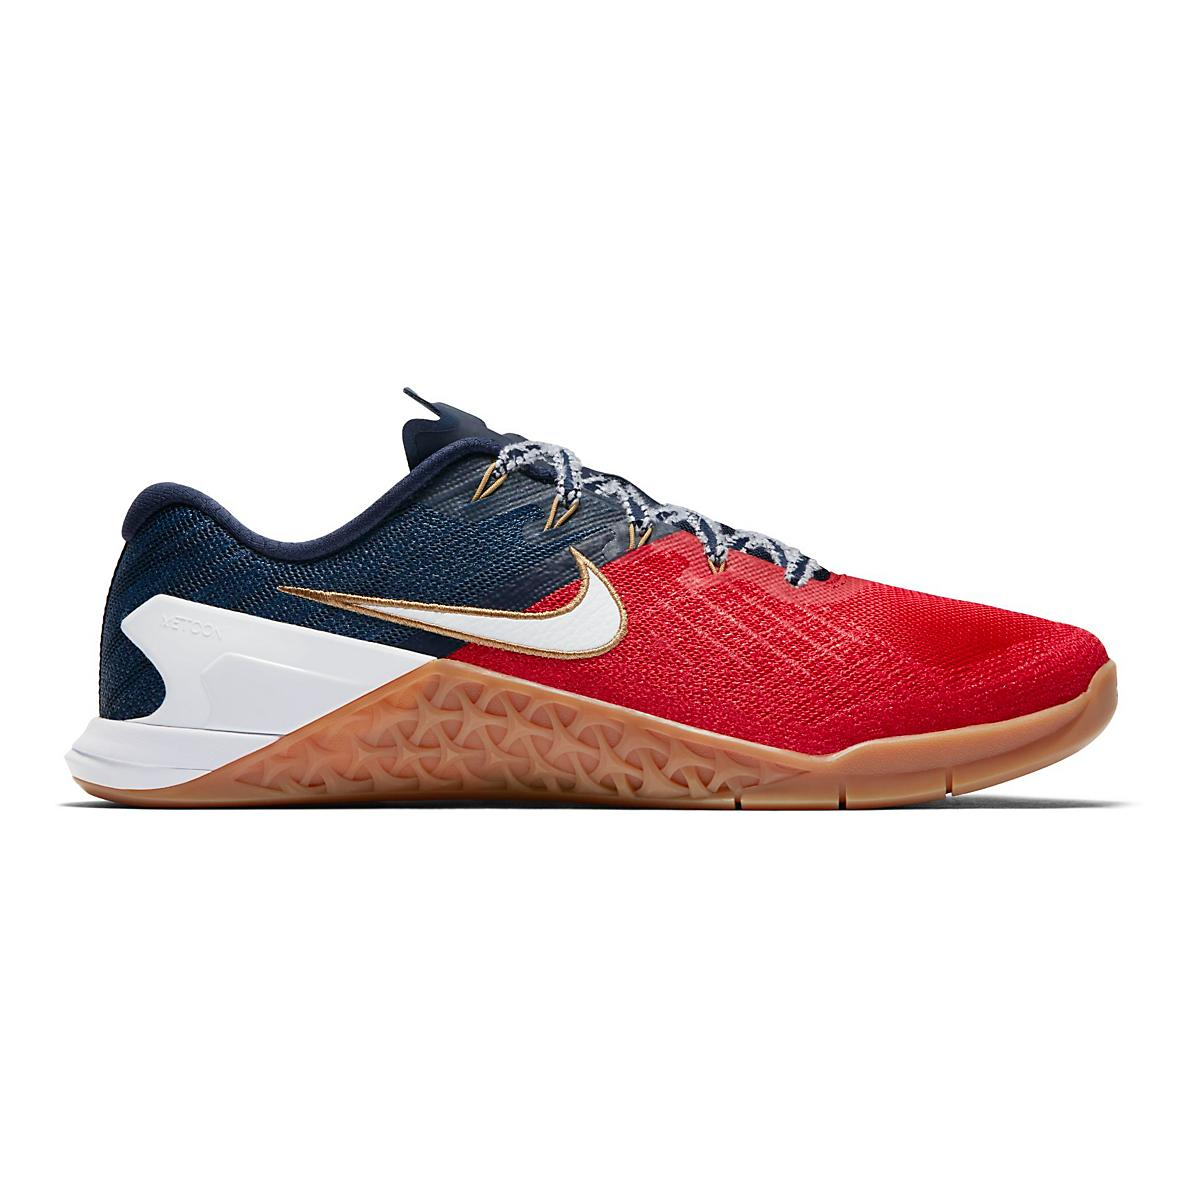 175f091a5732 Mens Nike MetCon 3 Freedom Cross Training Shoe at Road Runner Sports